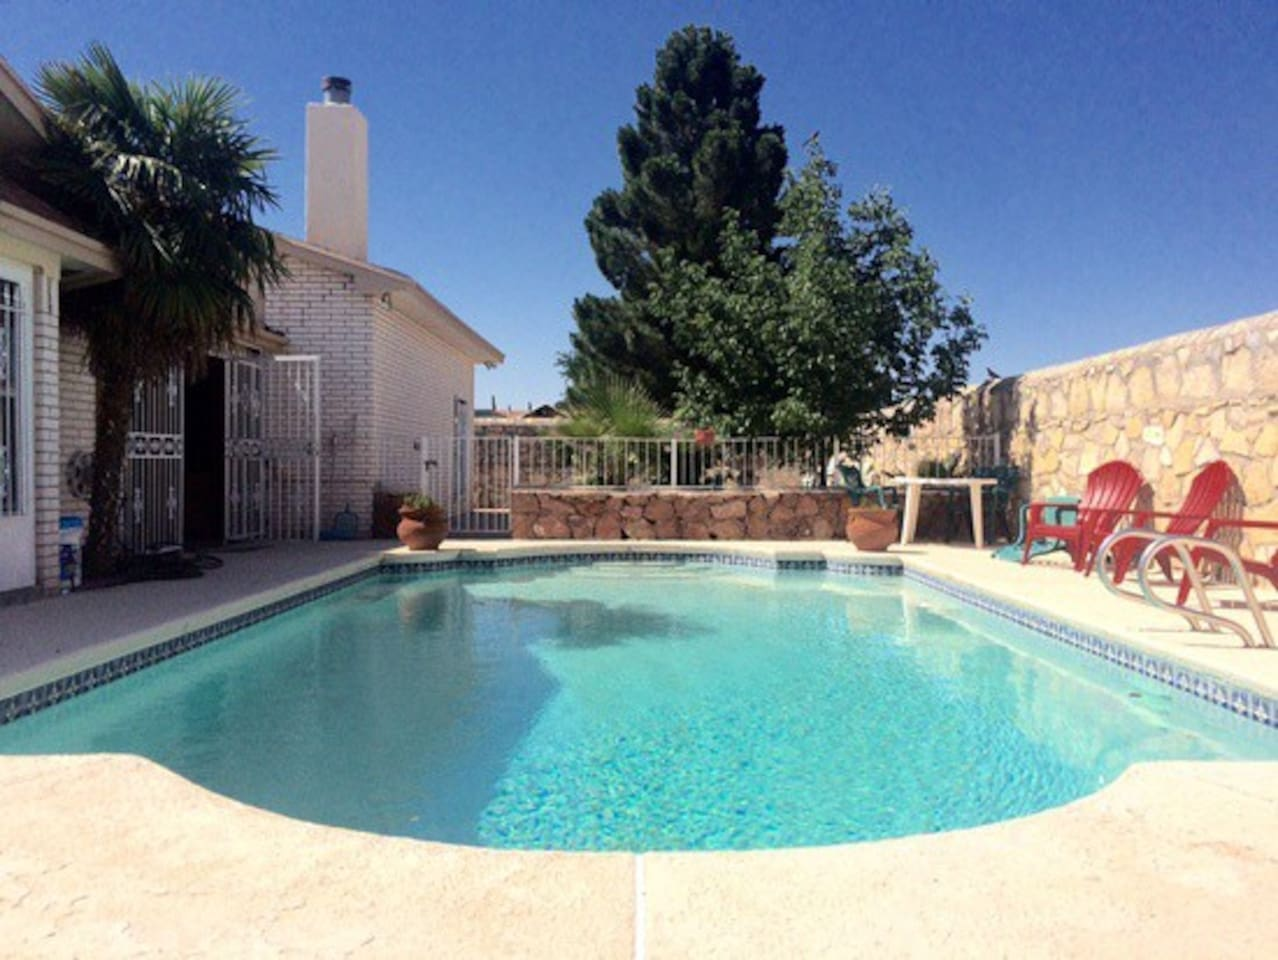 Private Back-yard Pool with Sauna access for AirBnB guests, open season is May-October.